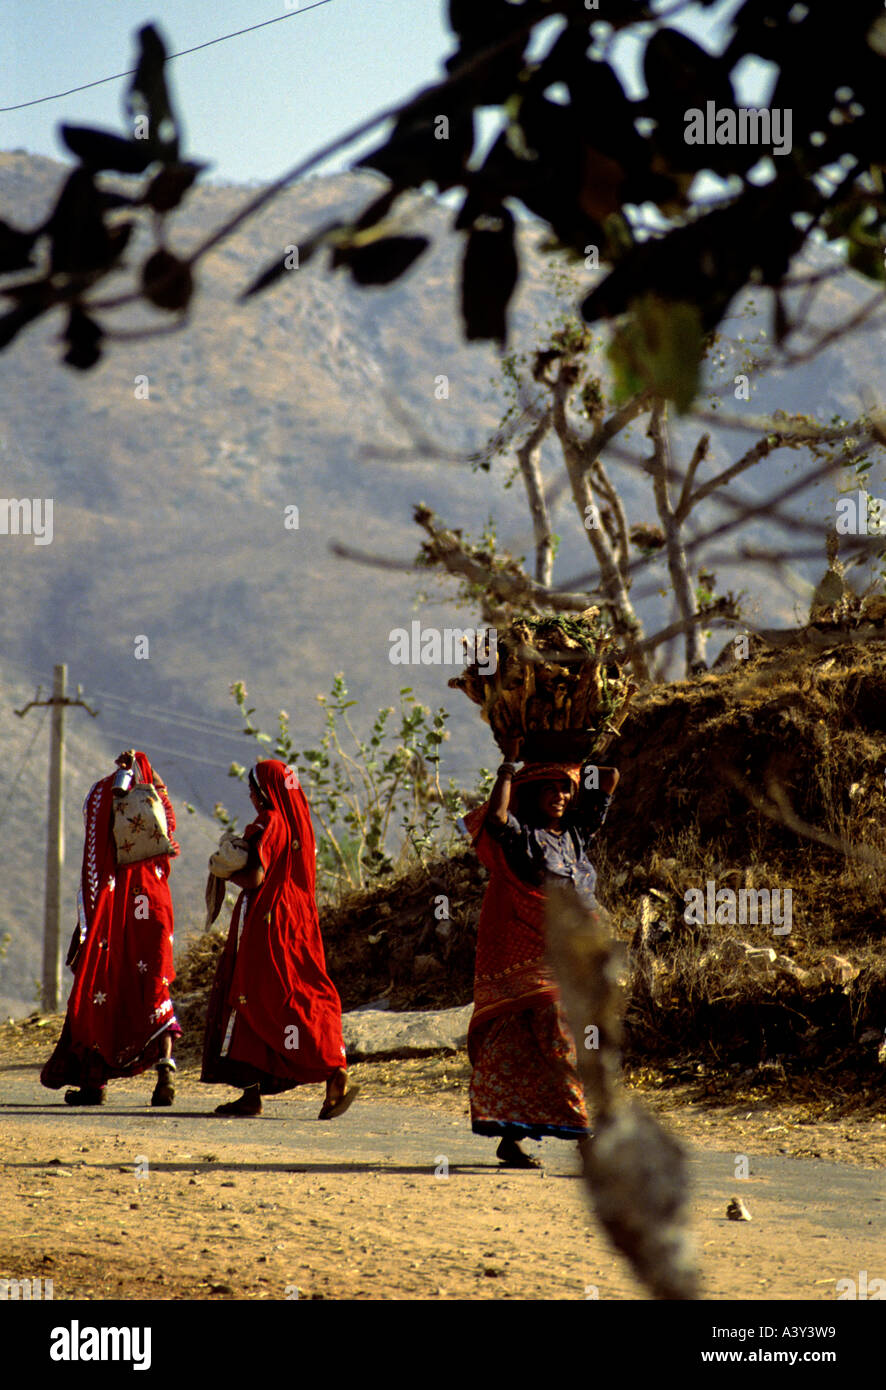 women carrying burden on head near city of pushkar and desert of thar state of rajasthan india - Stock Image